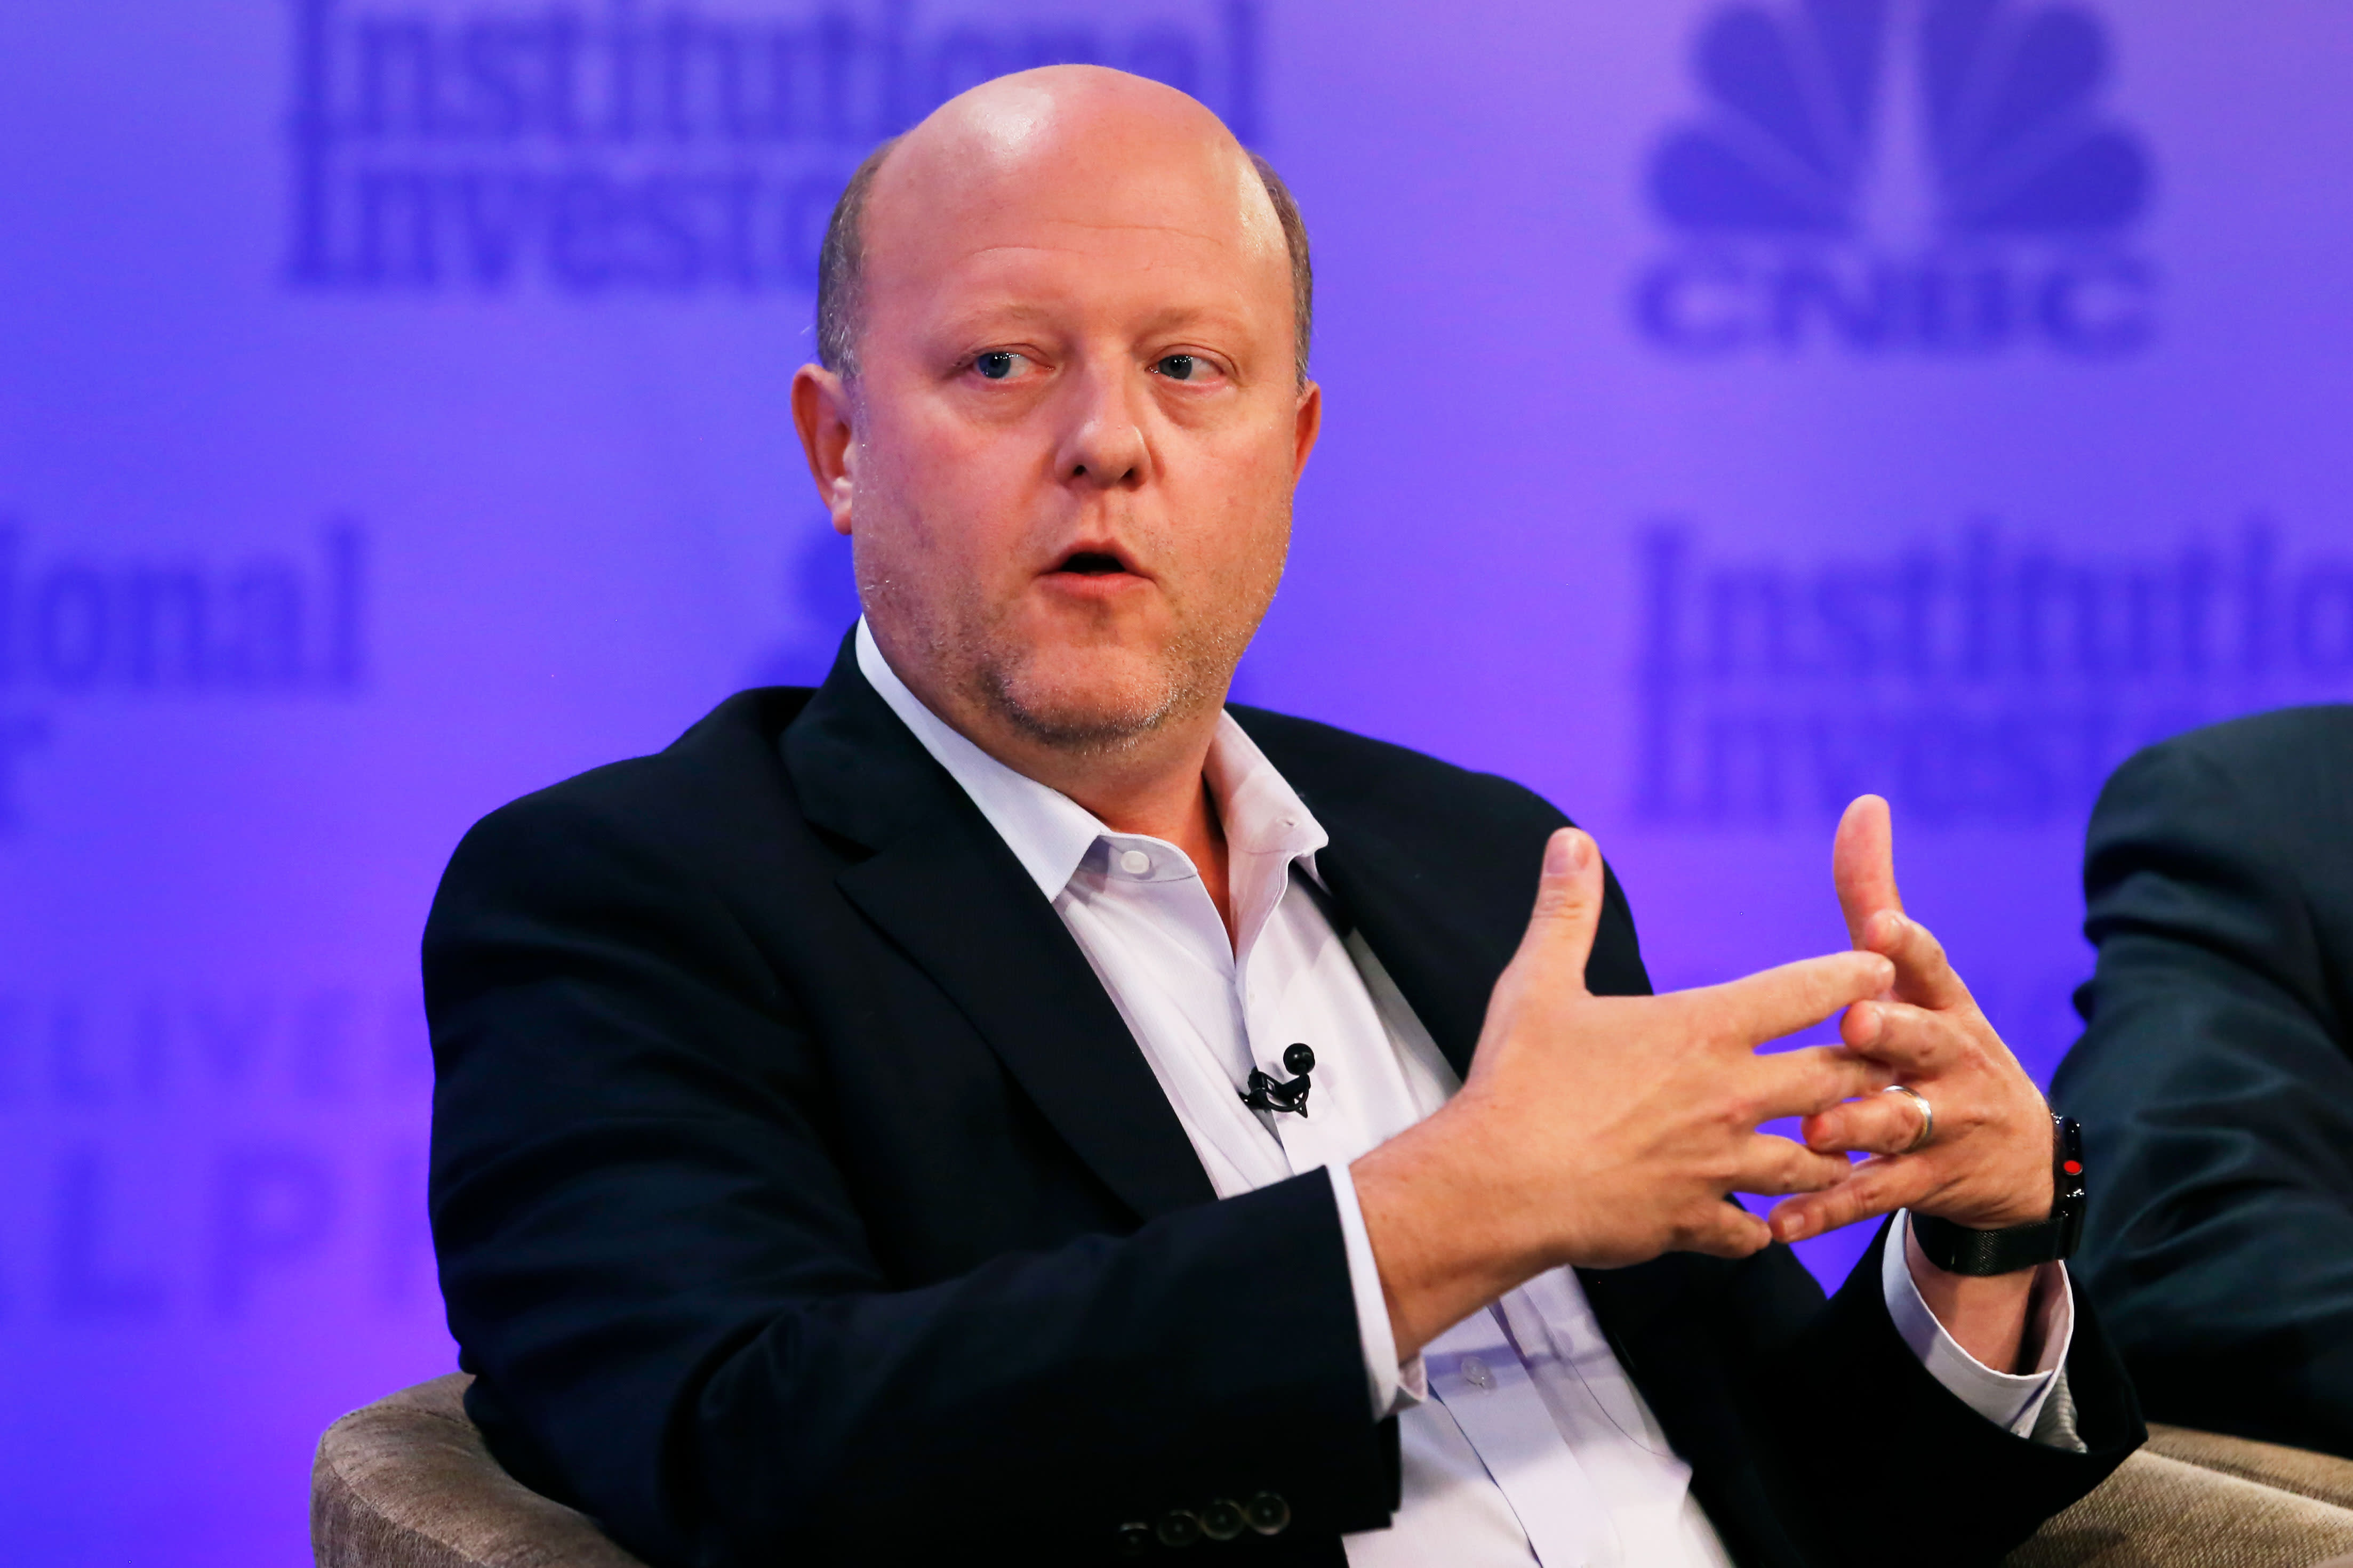 Digital currency company Circle to go public via SPAC at $4.5 billion valuation